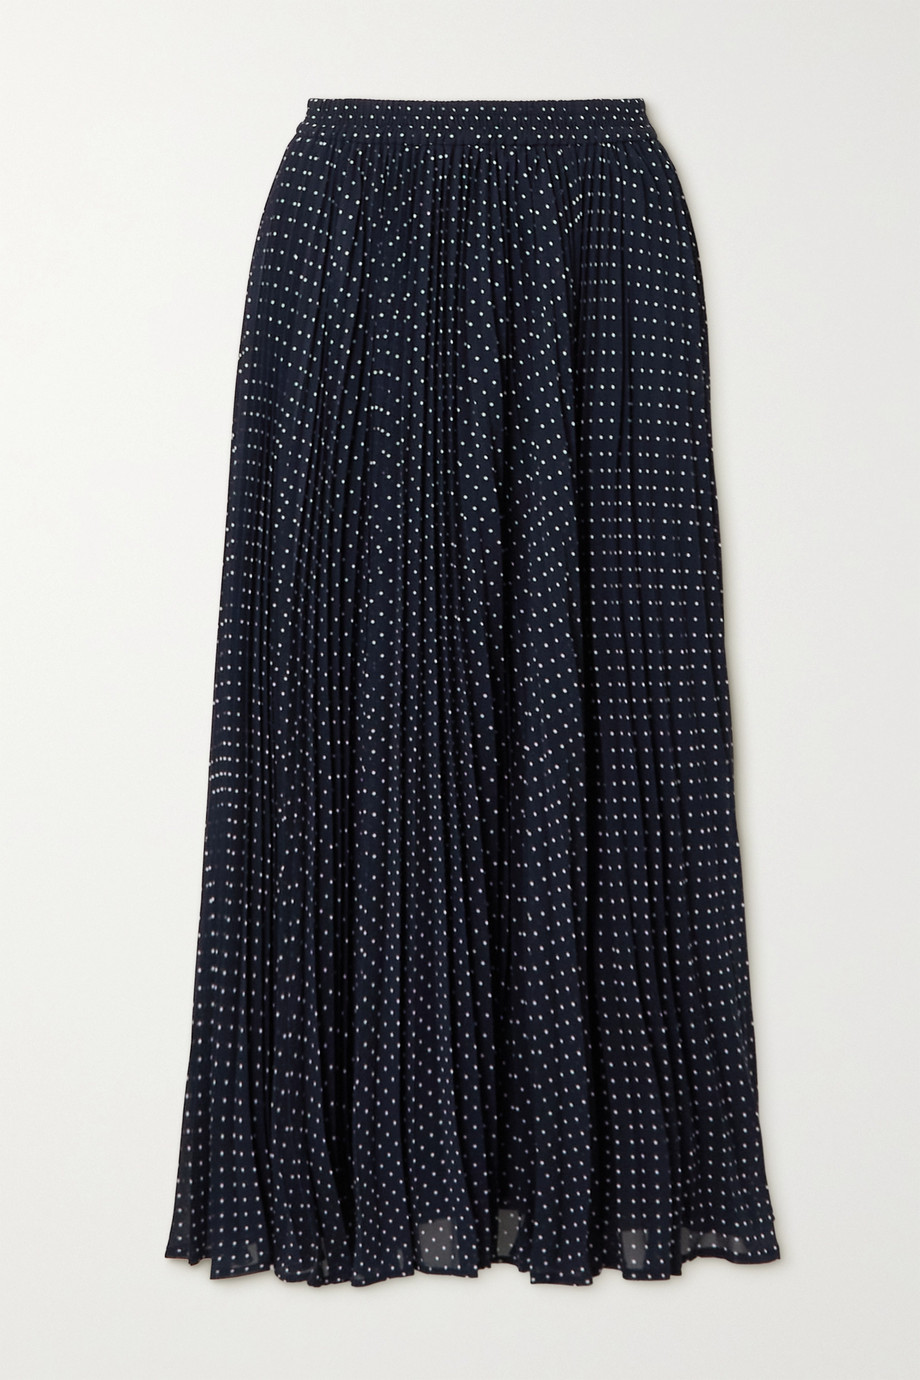 MICHAEL MICHAEL KORS Pleated polka-dot georgette midi skirt